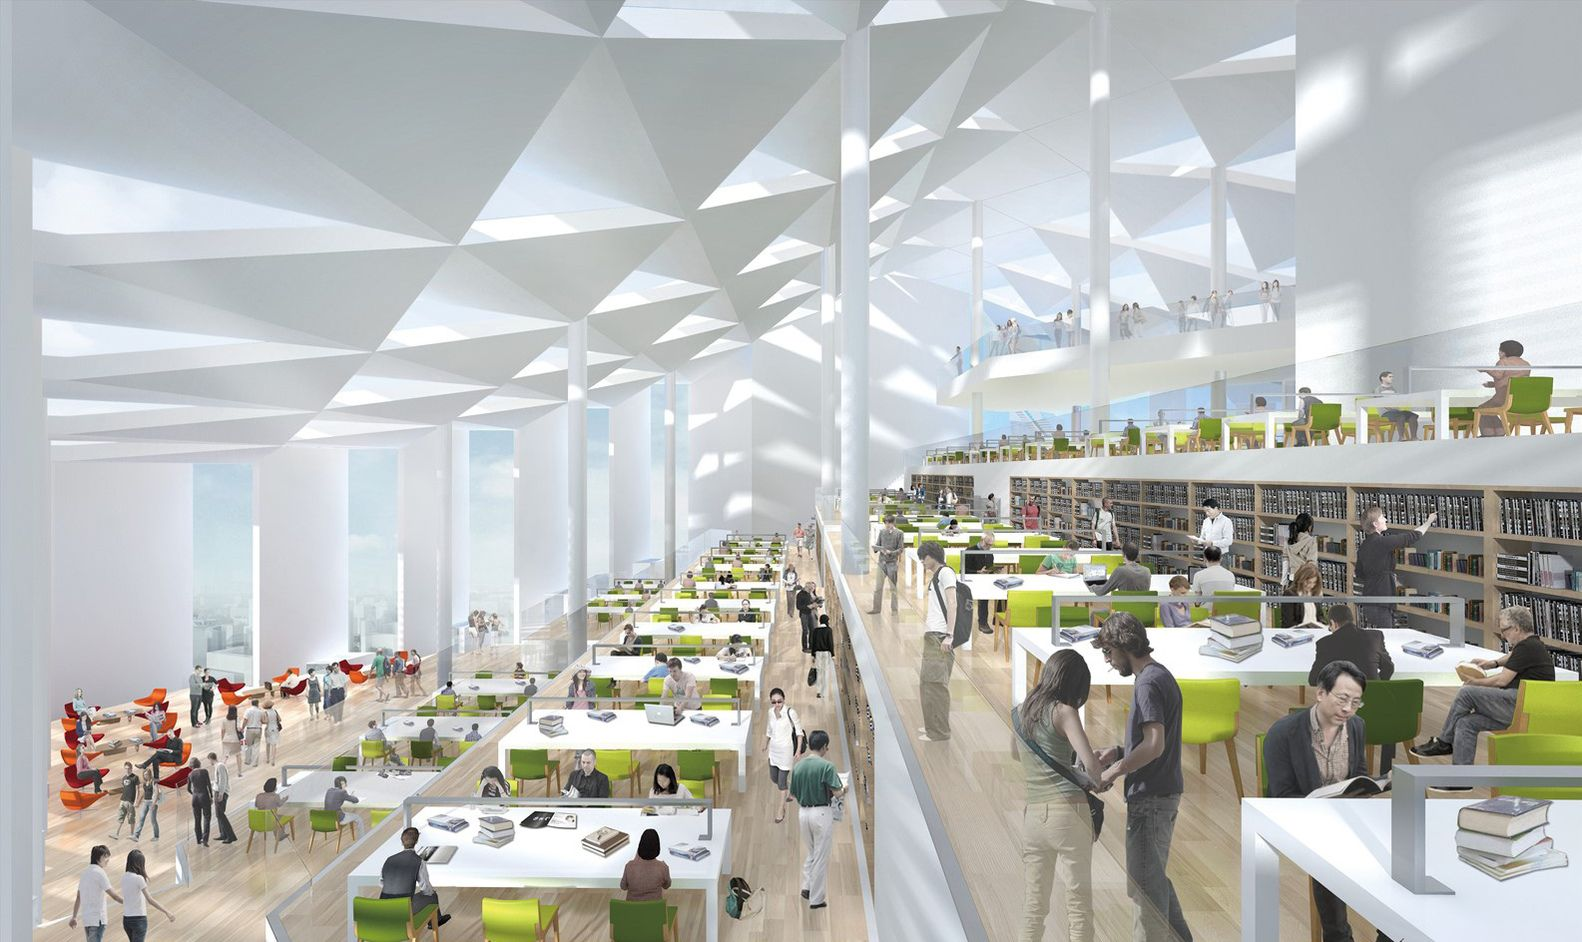 Gallery of Pei Partnership Architects Wins Competition for Nanhai Cultural Center - 12